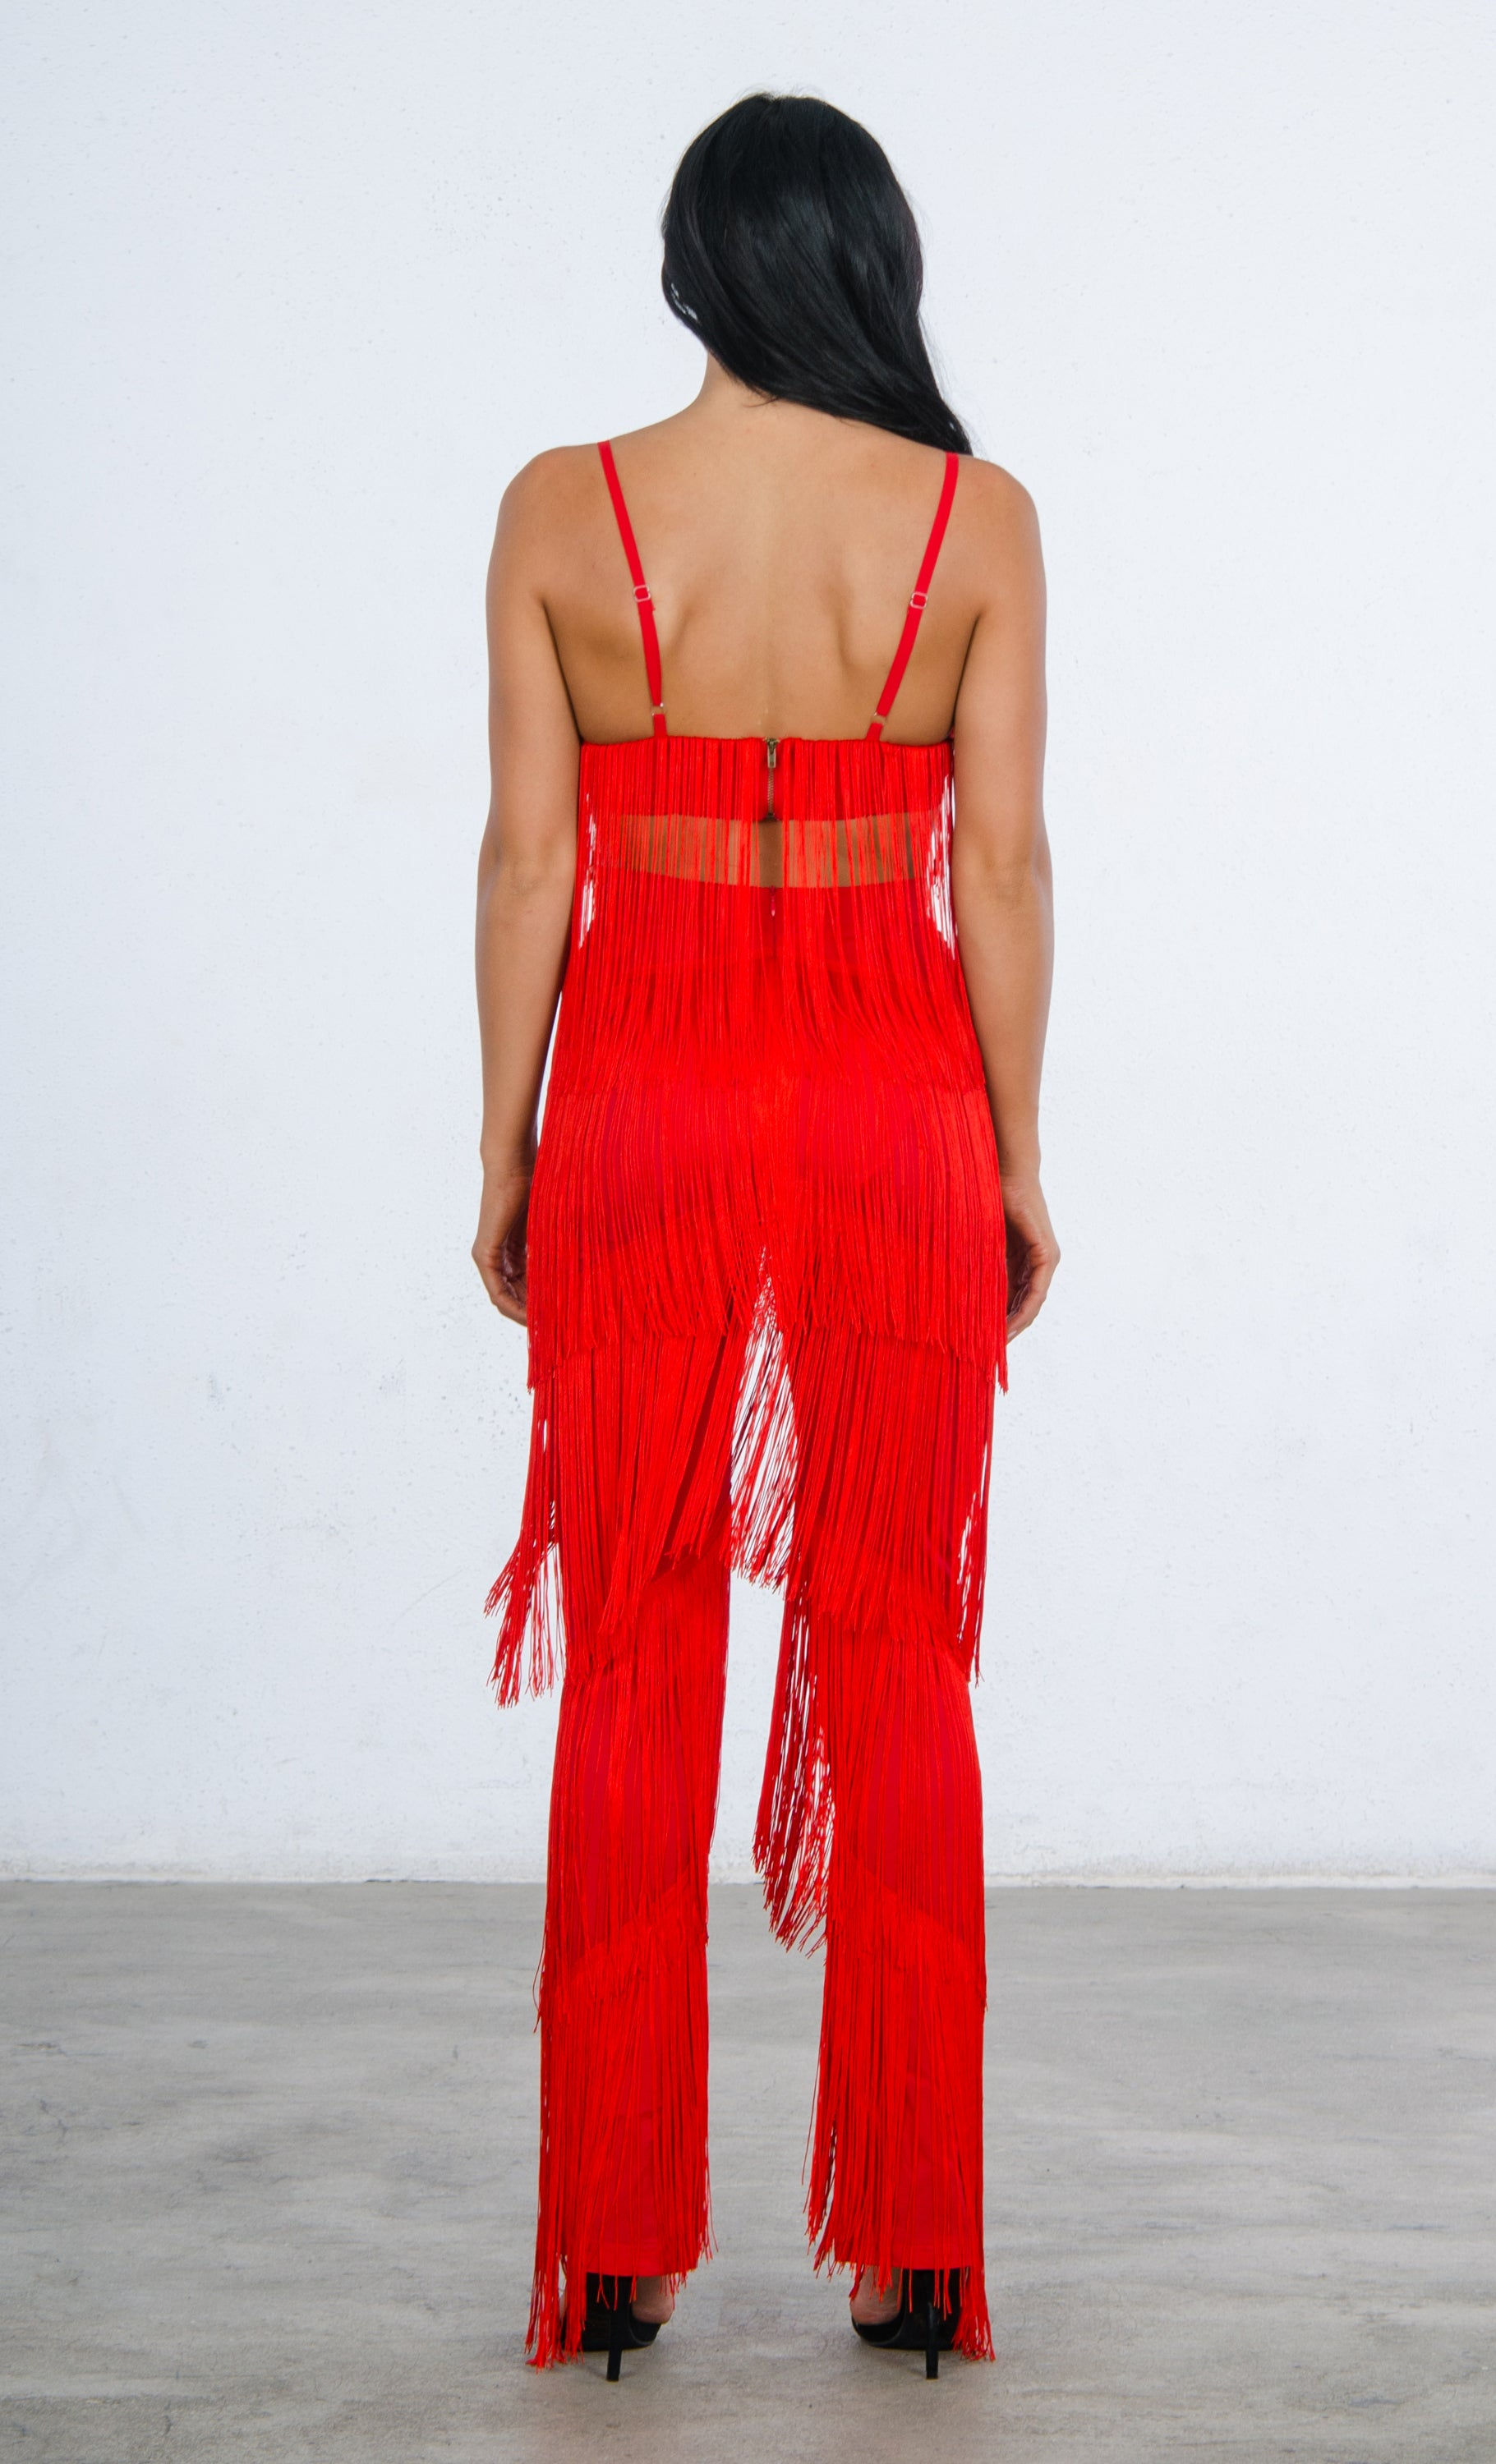 a8ab9652796e Indie XO It s All About You Fringe Red Sleeveless Spaghetti Strap V Neck  Crop Top Wide